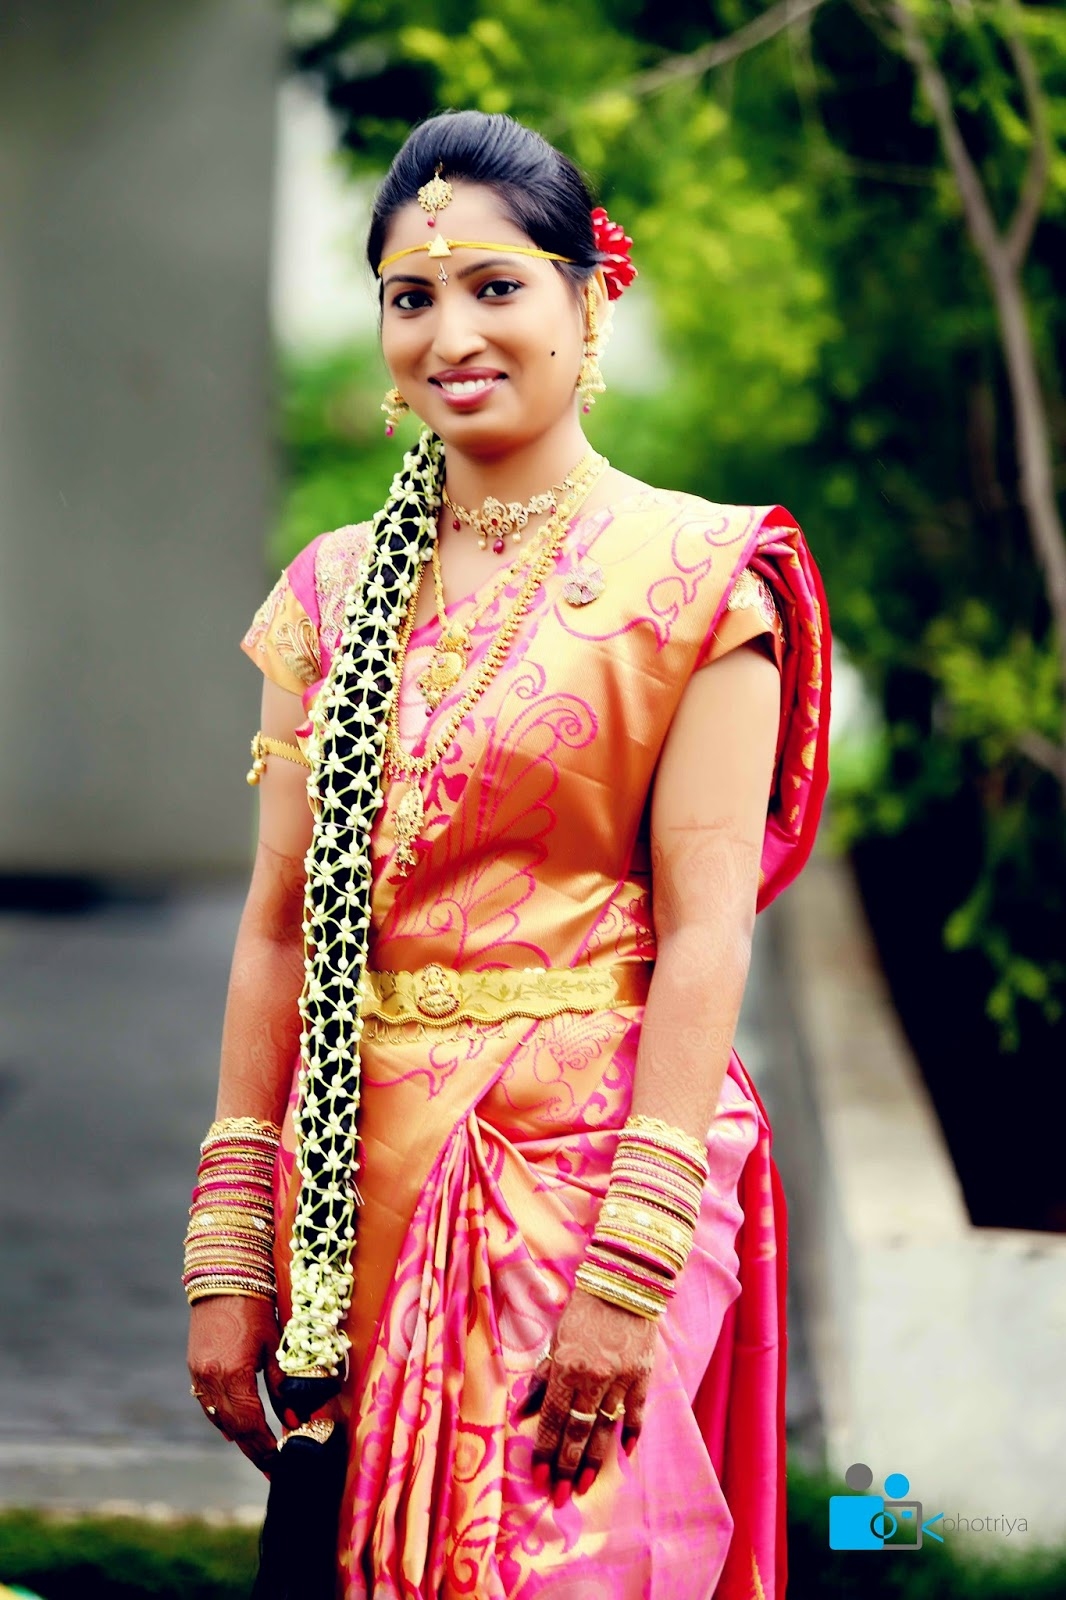 Incredible Pelli Poola Jada Southindian Bridal Hairstyles With Flowers Hairstyle Inspiration Daily Dogsangcom